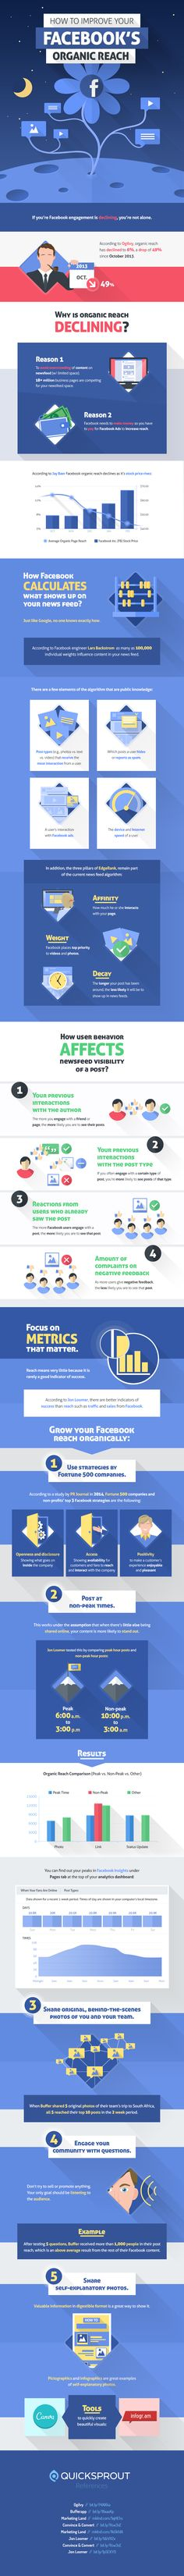 Improving Your Facebook Reach (Infographic)